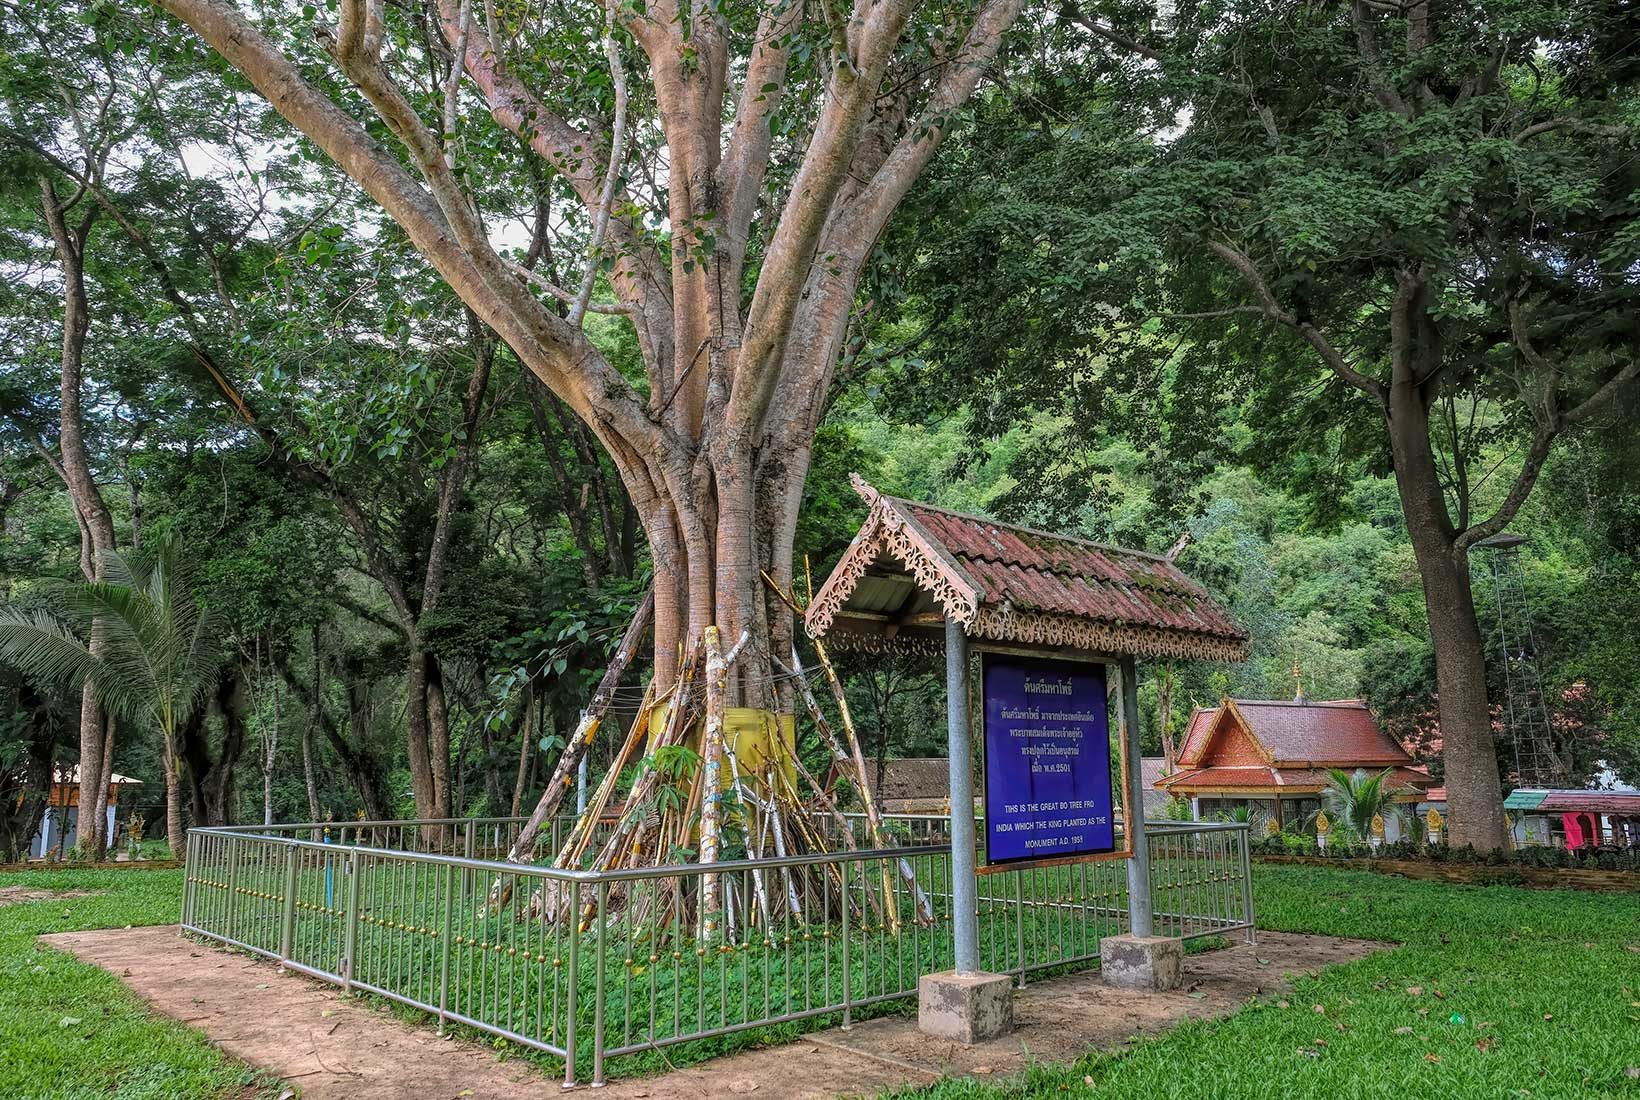 The golden monk's robe wrapped around the base of this great Bodhi Tree at Wat Tham Chiang Dao in Chiang Dao shows that it has been ordained. Planted by the king in 1958 it is considered a sacred tree. Worshipers have earned merit by placing decorated bamboo poles beneath its heavy limbs as suppots.